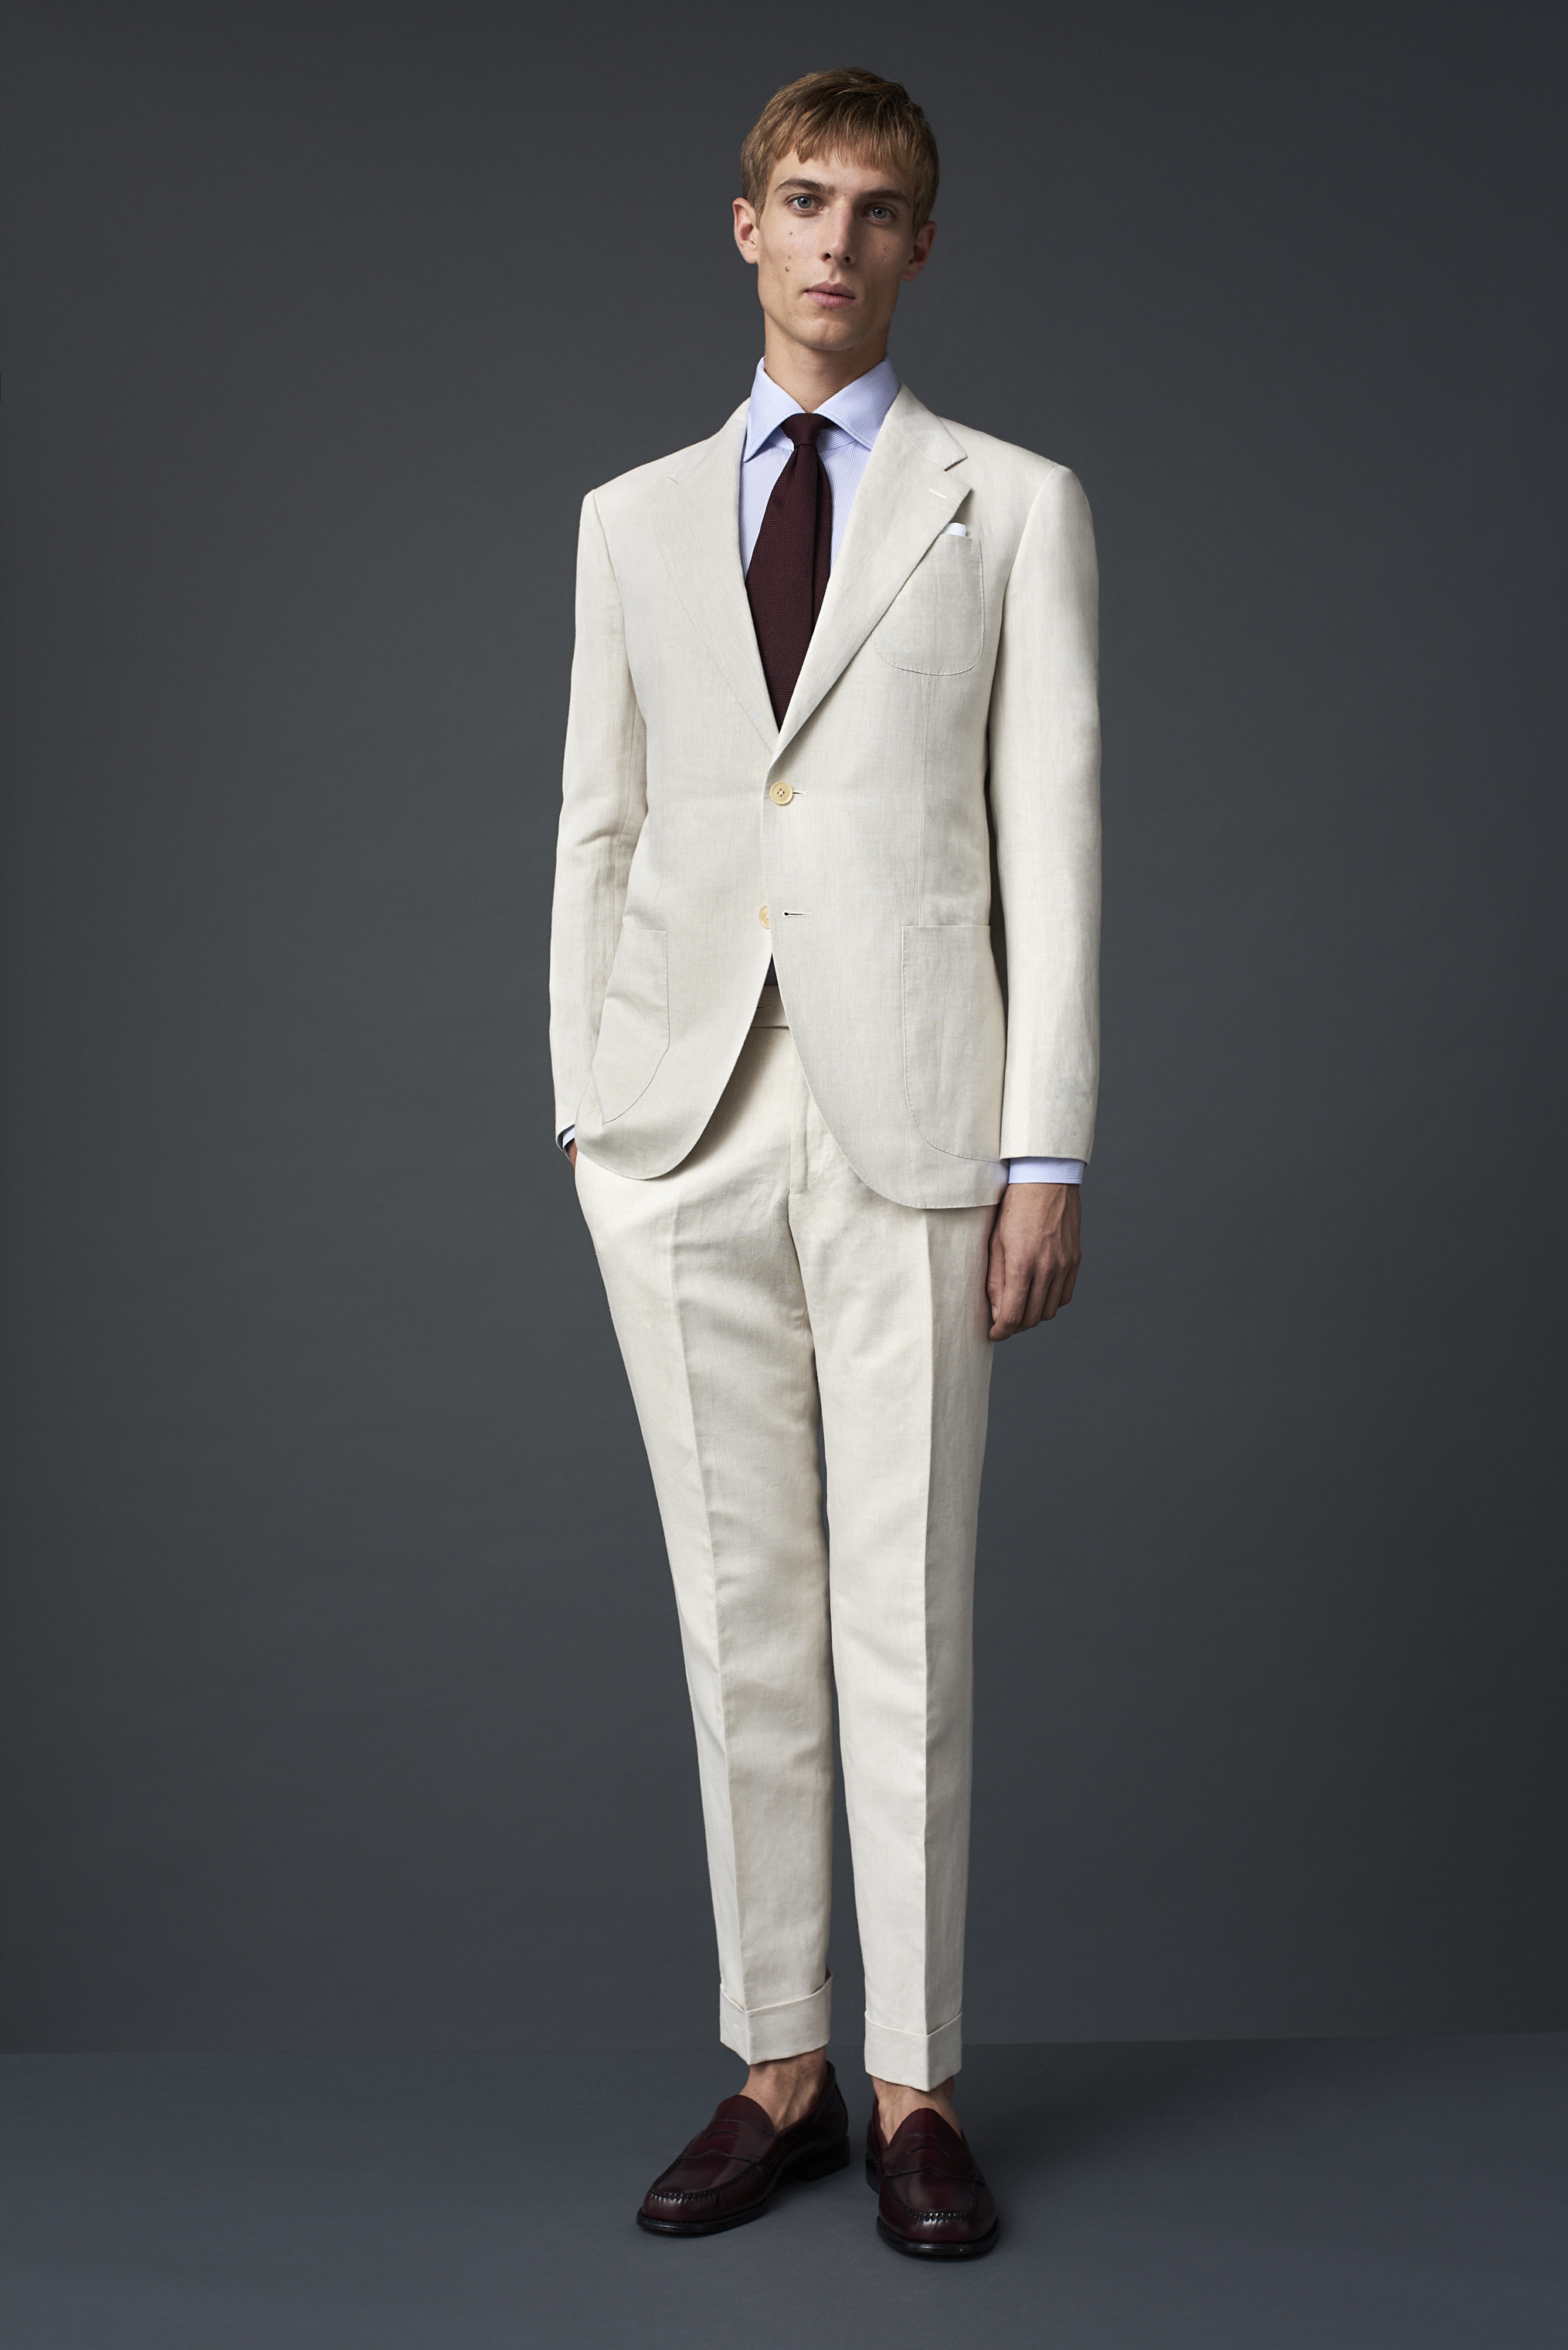 Ivory cotton linen suit woven in Como, with three patch pockets. Worn with an ice blue Egyptian cotton twill shirt and a burgundy grenadine tie.